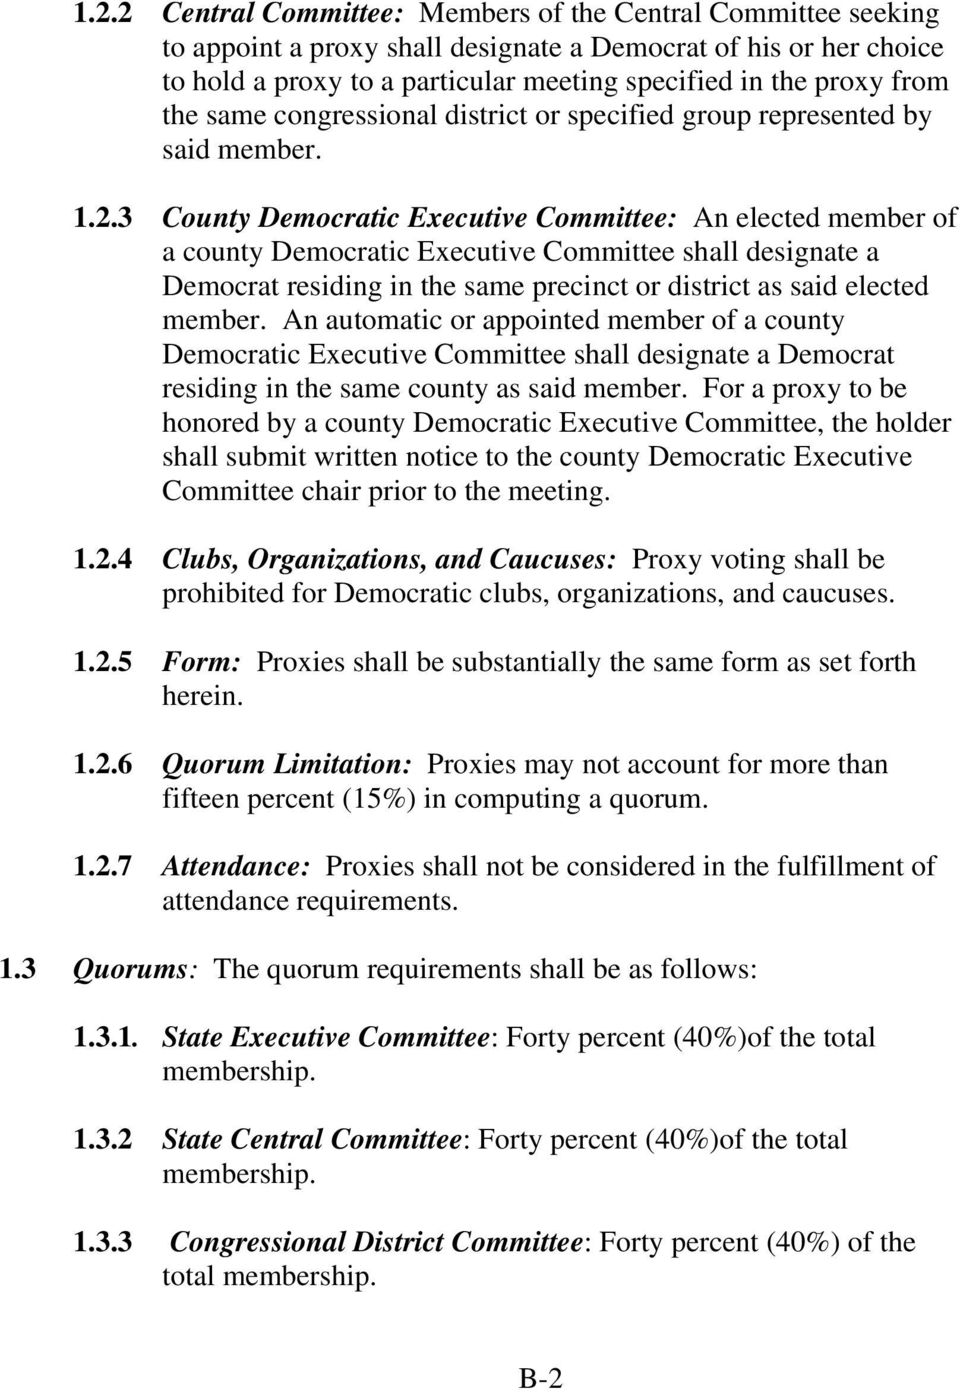 3 County Democratic Executive Committee: An elected member of a county Democratic Executive Committee shall designate a Democrat residing in the same precinct or district as said elected member.